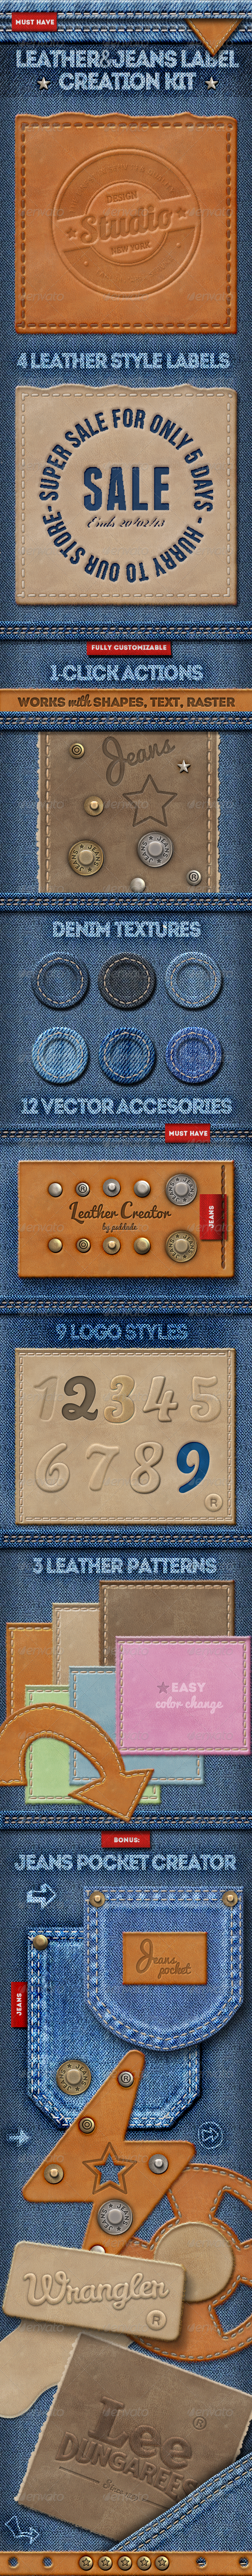 Leather Jeans Label Photoshop Creator - Utilities Actions